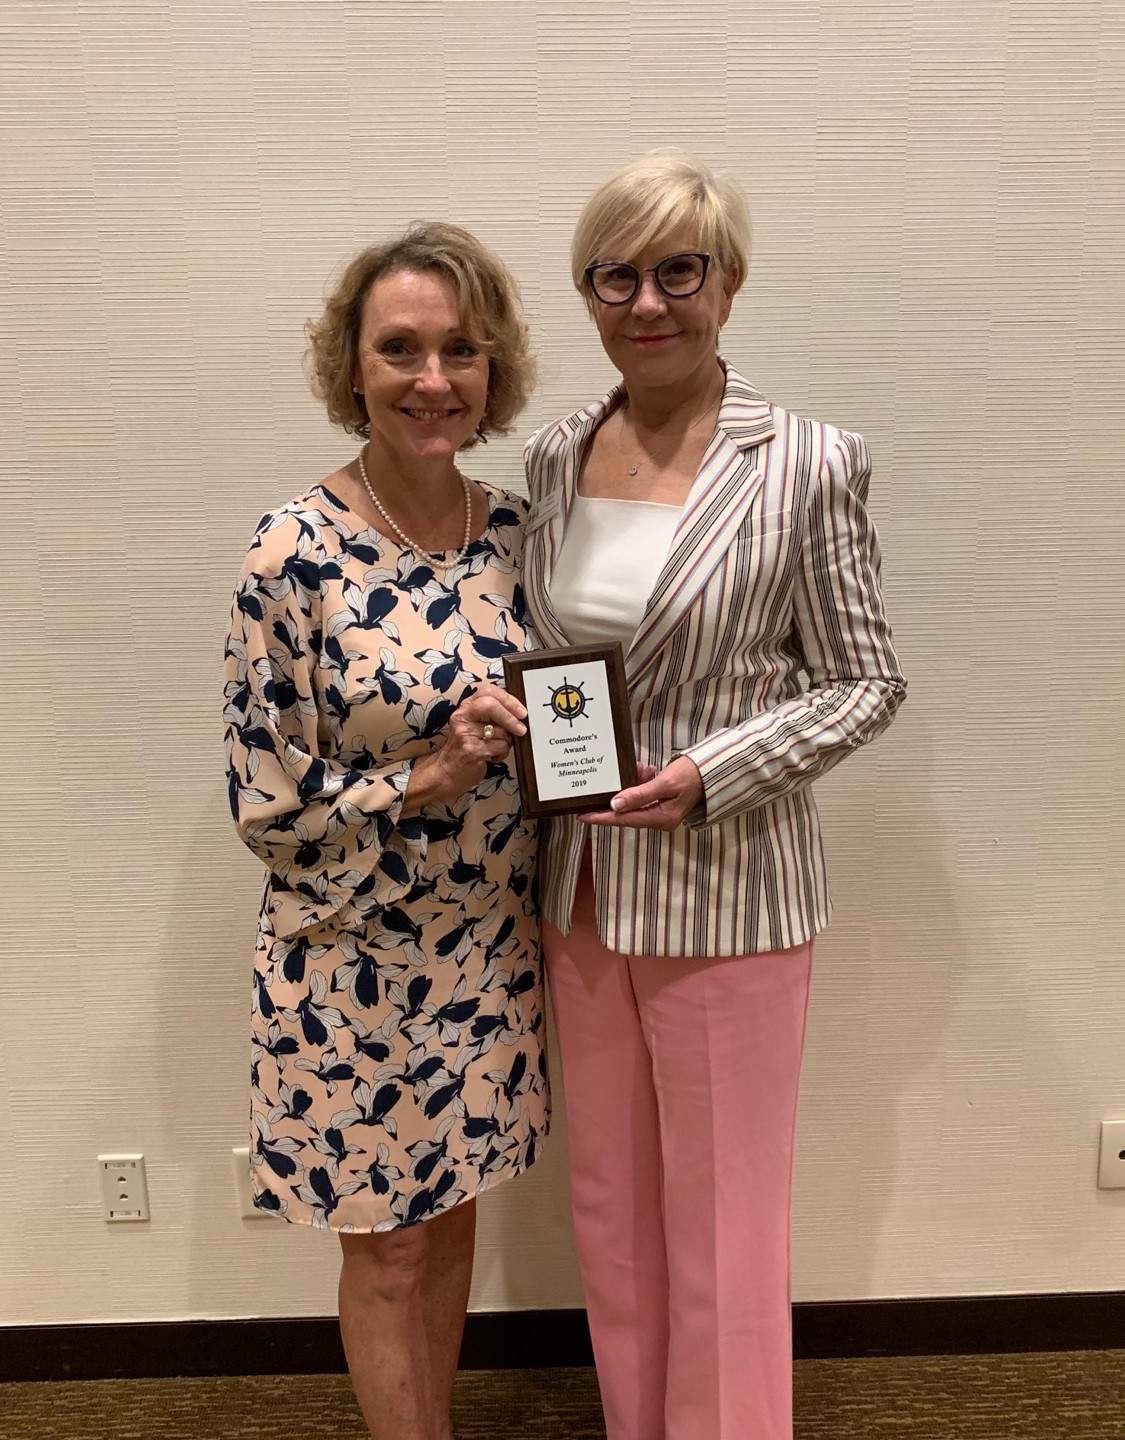 The Woman's Club of Minneapolis with the Commodore's Award